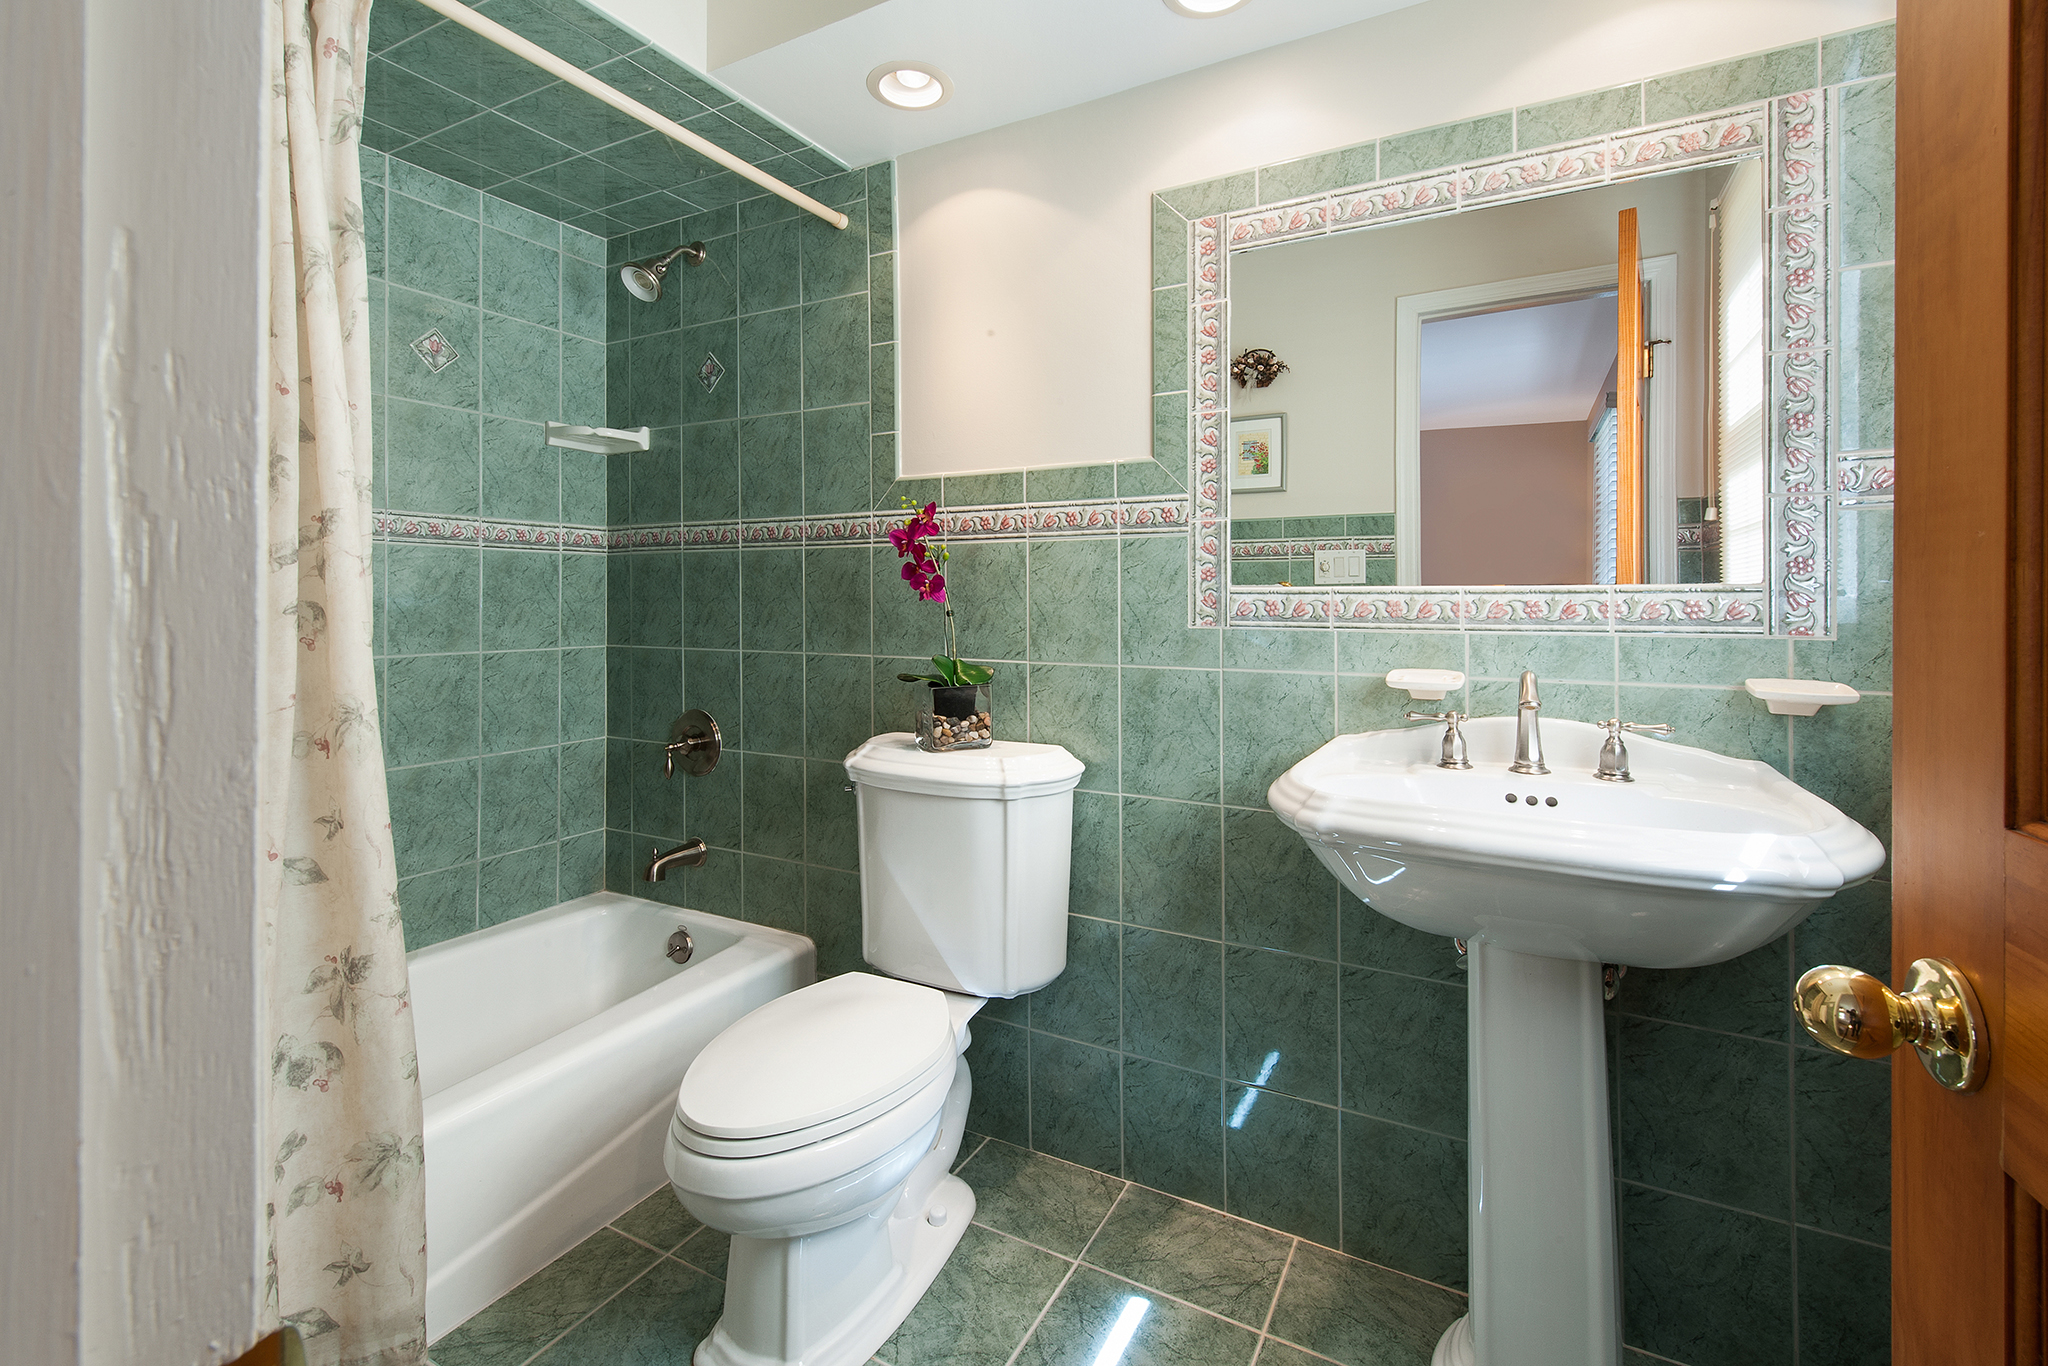 09 1 Dinner Pot Road, Tewksbury — Bathroom (deleted 4e9952d38ed1889aca15b0161b50427e)